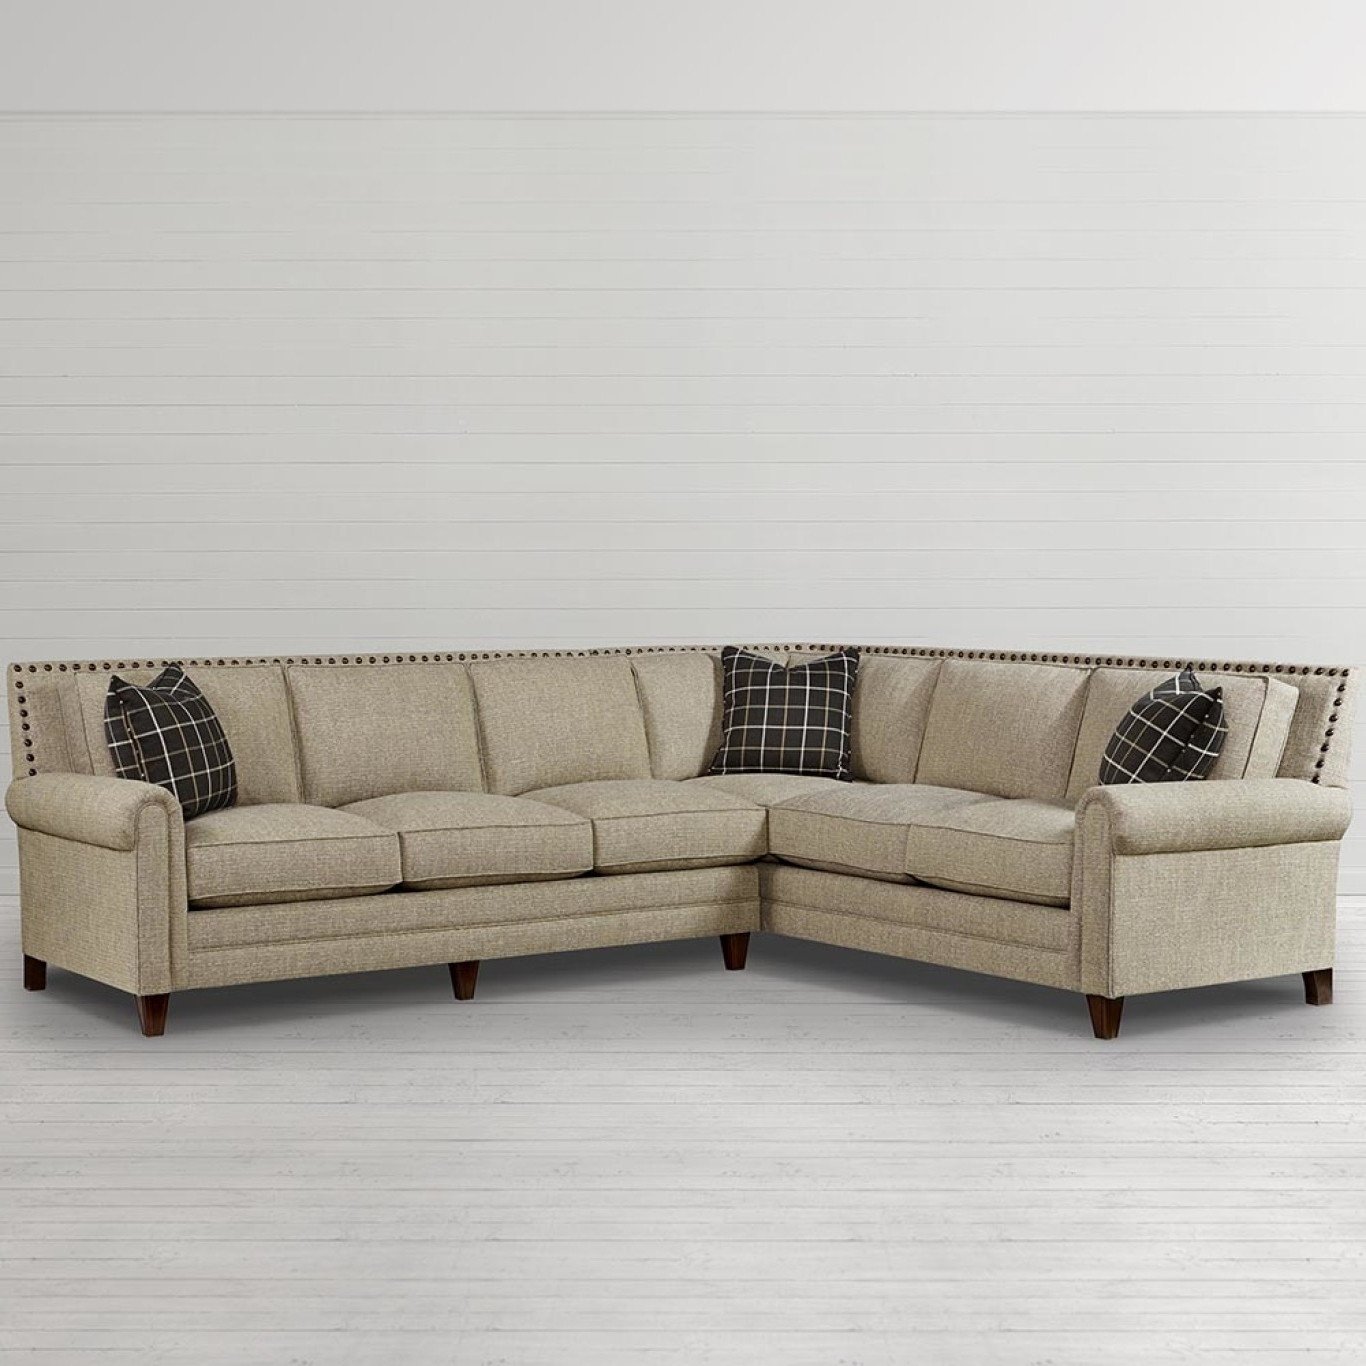 Fashionable Sectional Sofas In Greenville Sc With Bassett Furniture Greenville Sc (View 3 of 20)